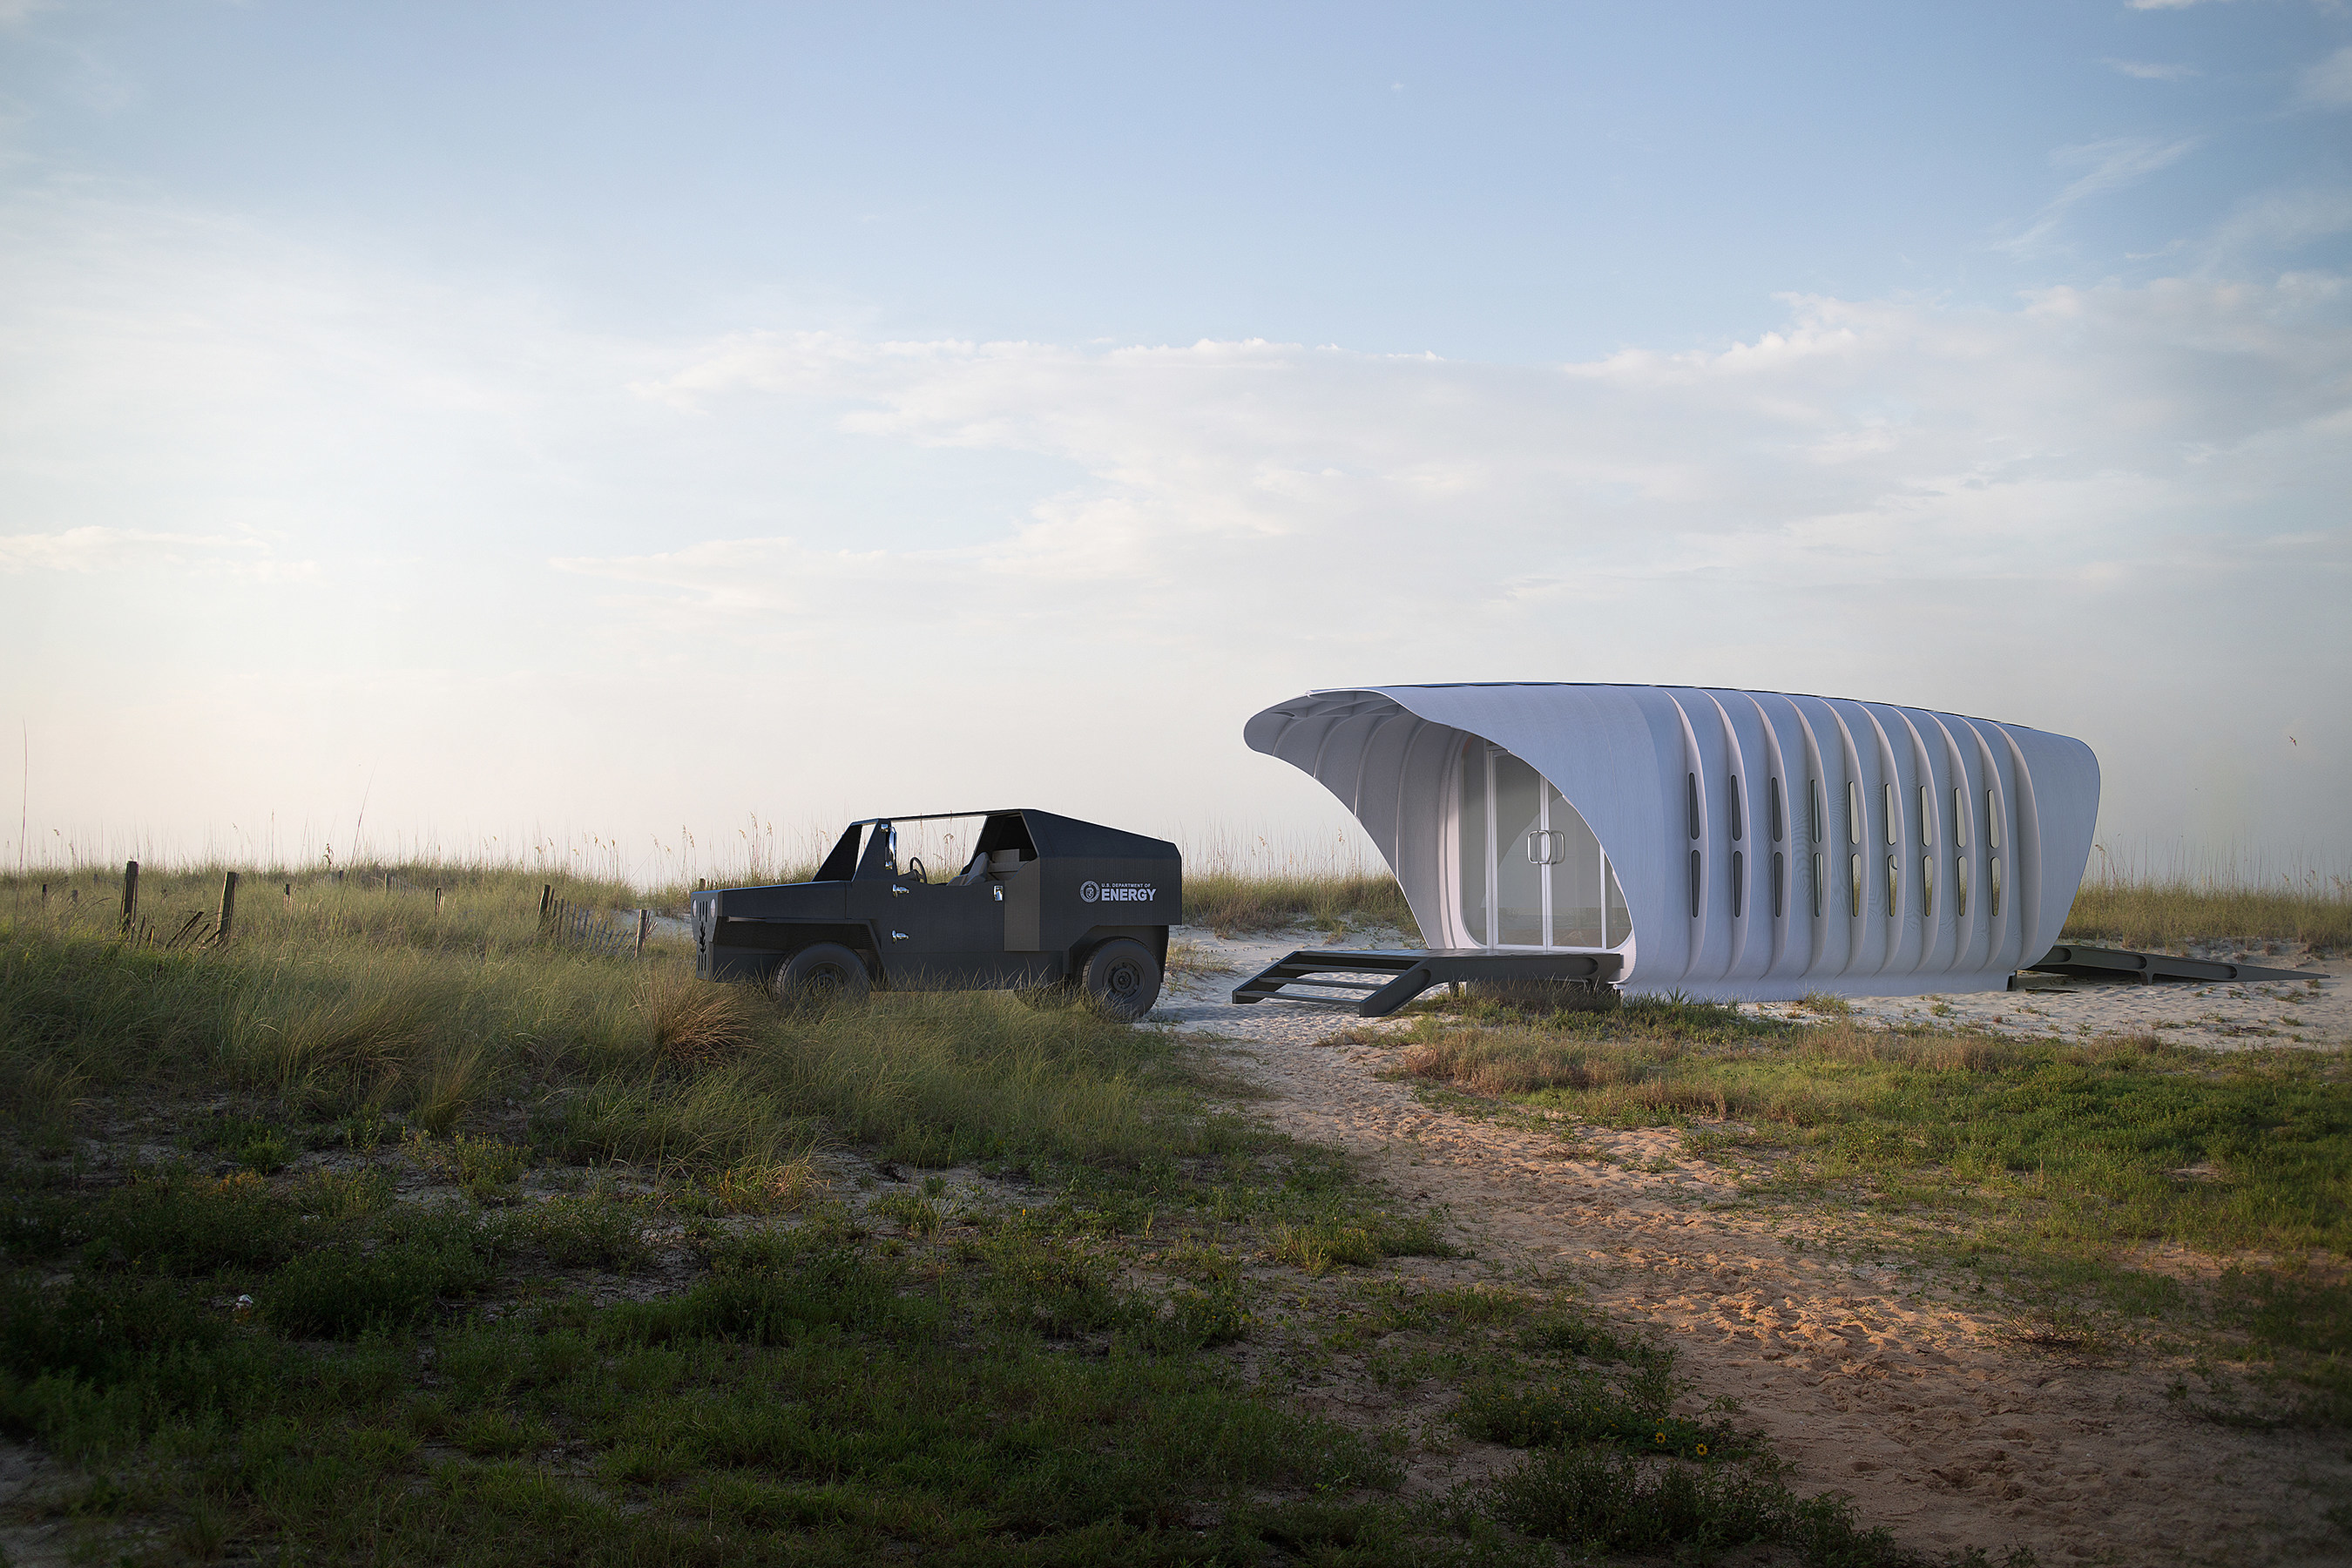 Oak Ridge National Laboratory Unveils SOM-Designed 3D-Printed Building Powered by a Car